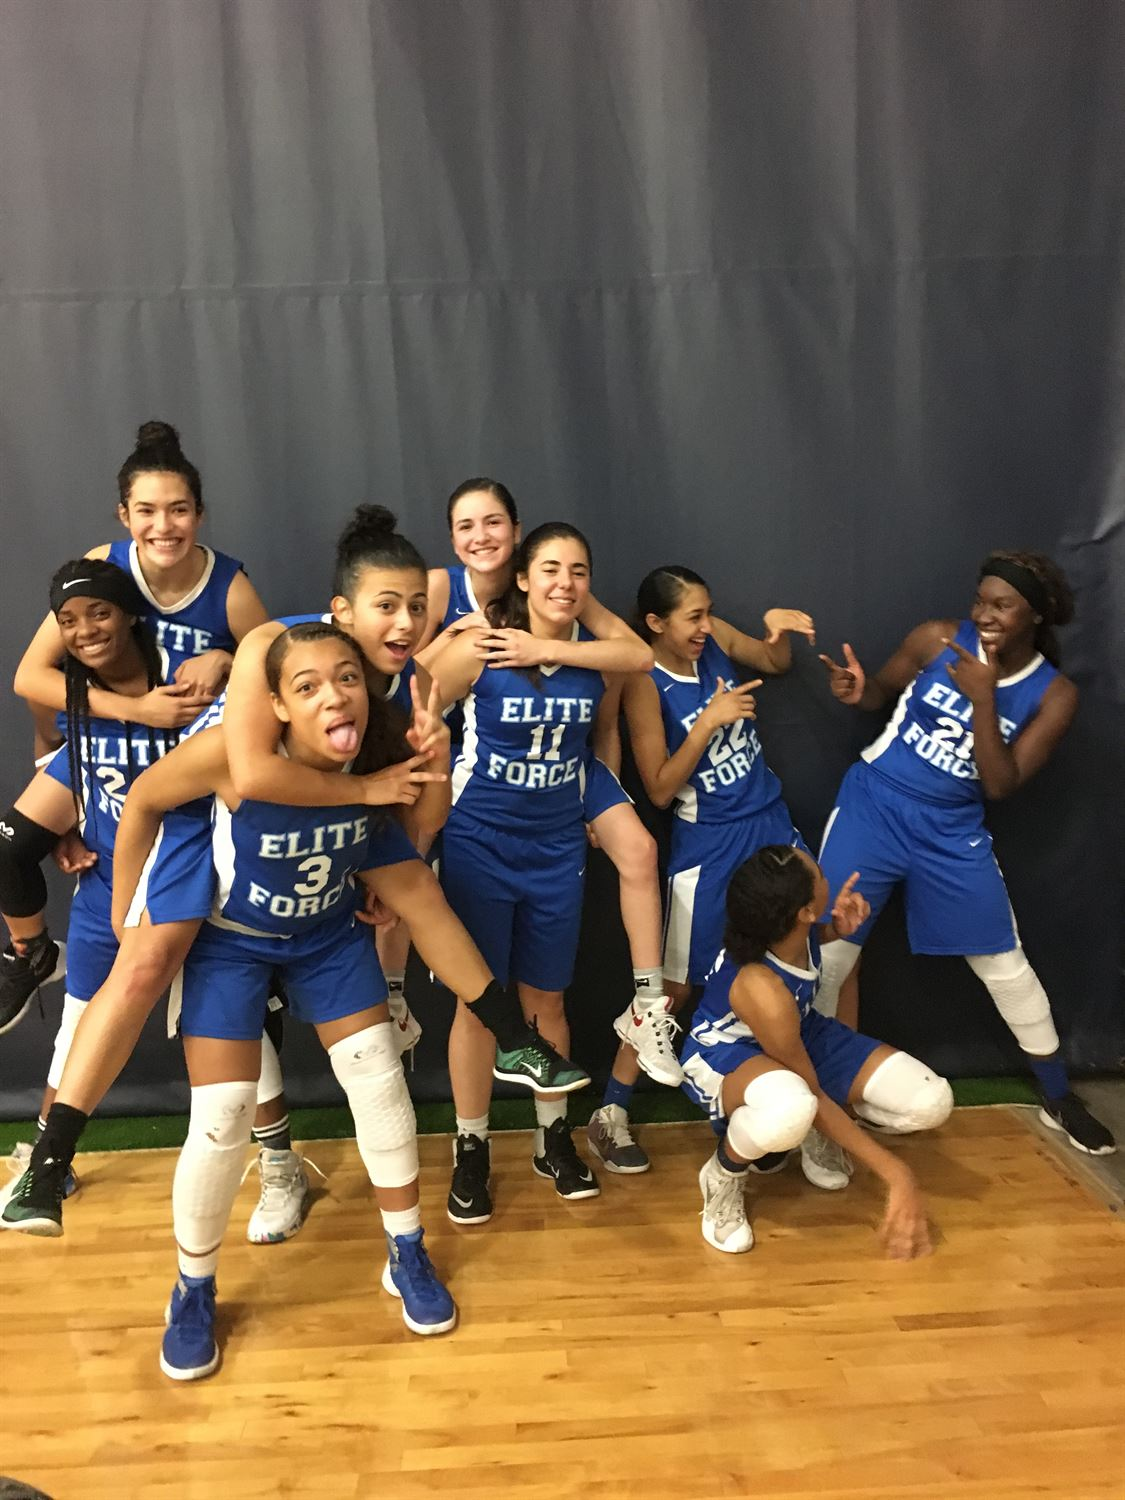 9ae84afe8a573 Elite Force Basketball - Elite Force Basketball - Canutillo, Texas ...